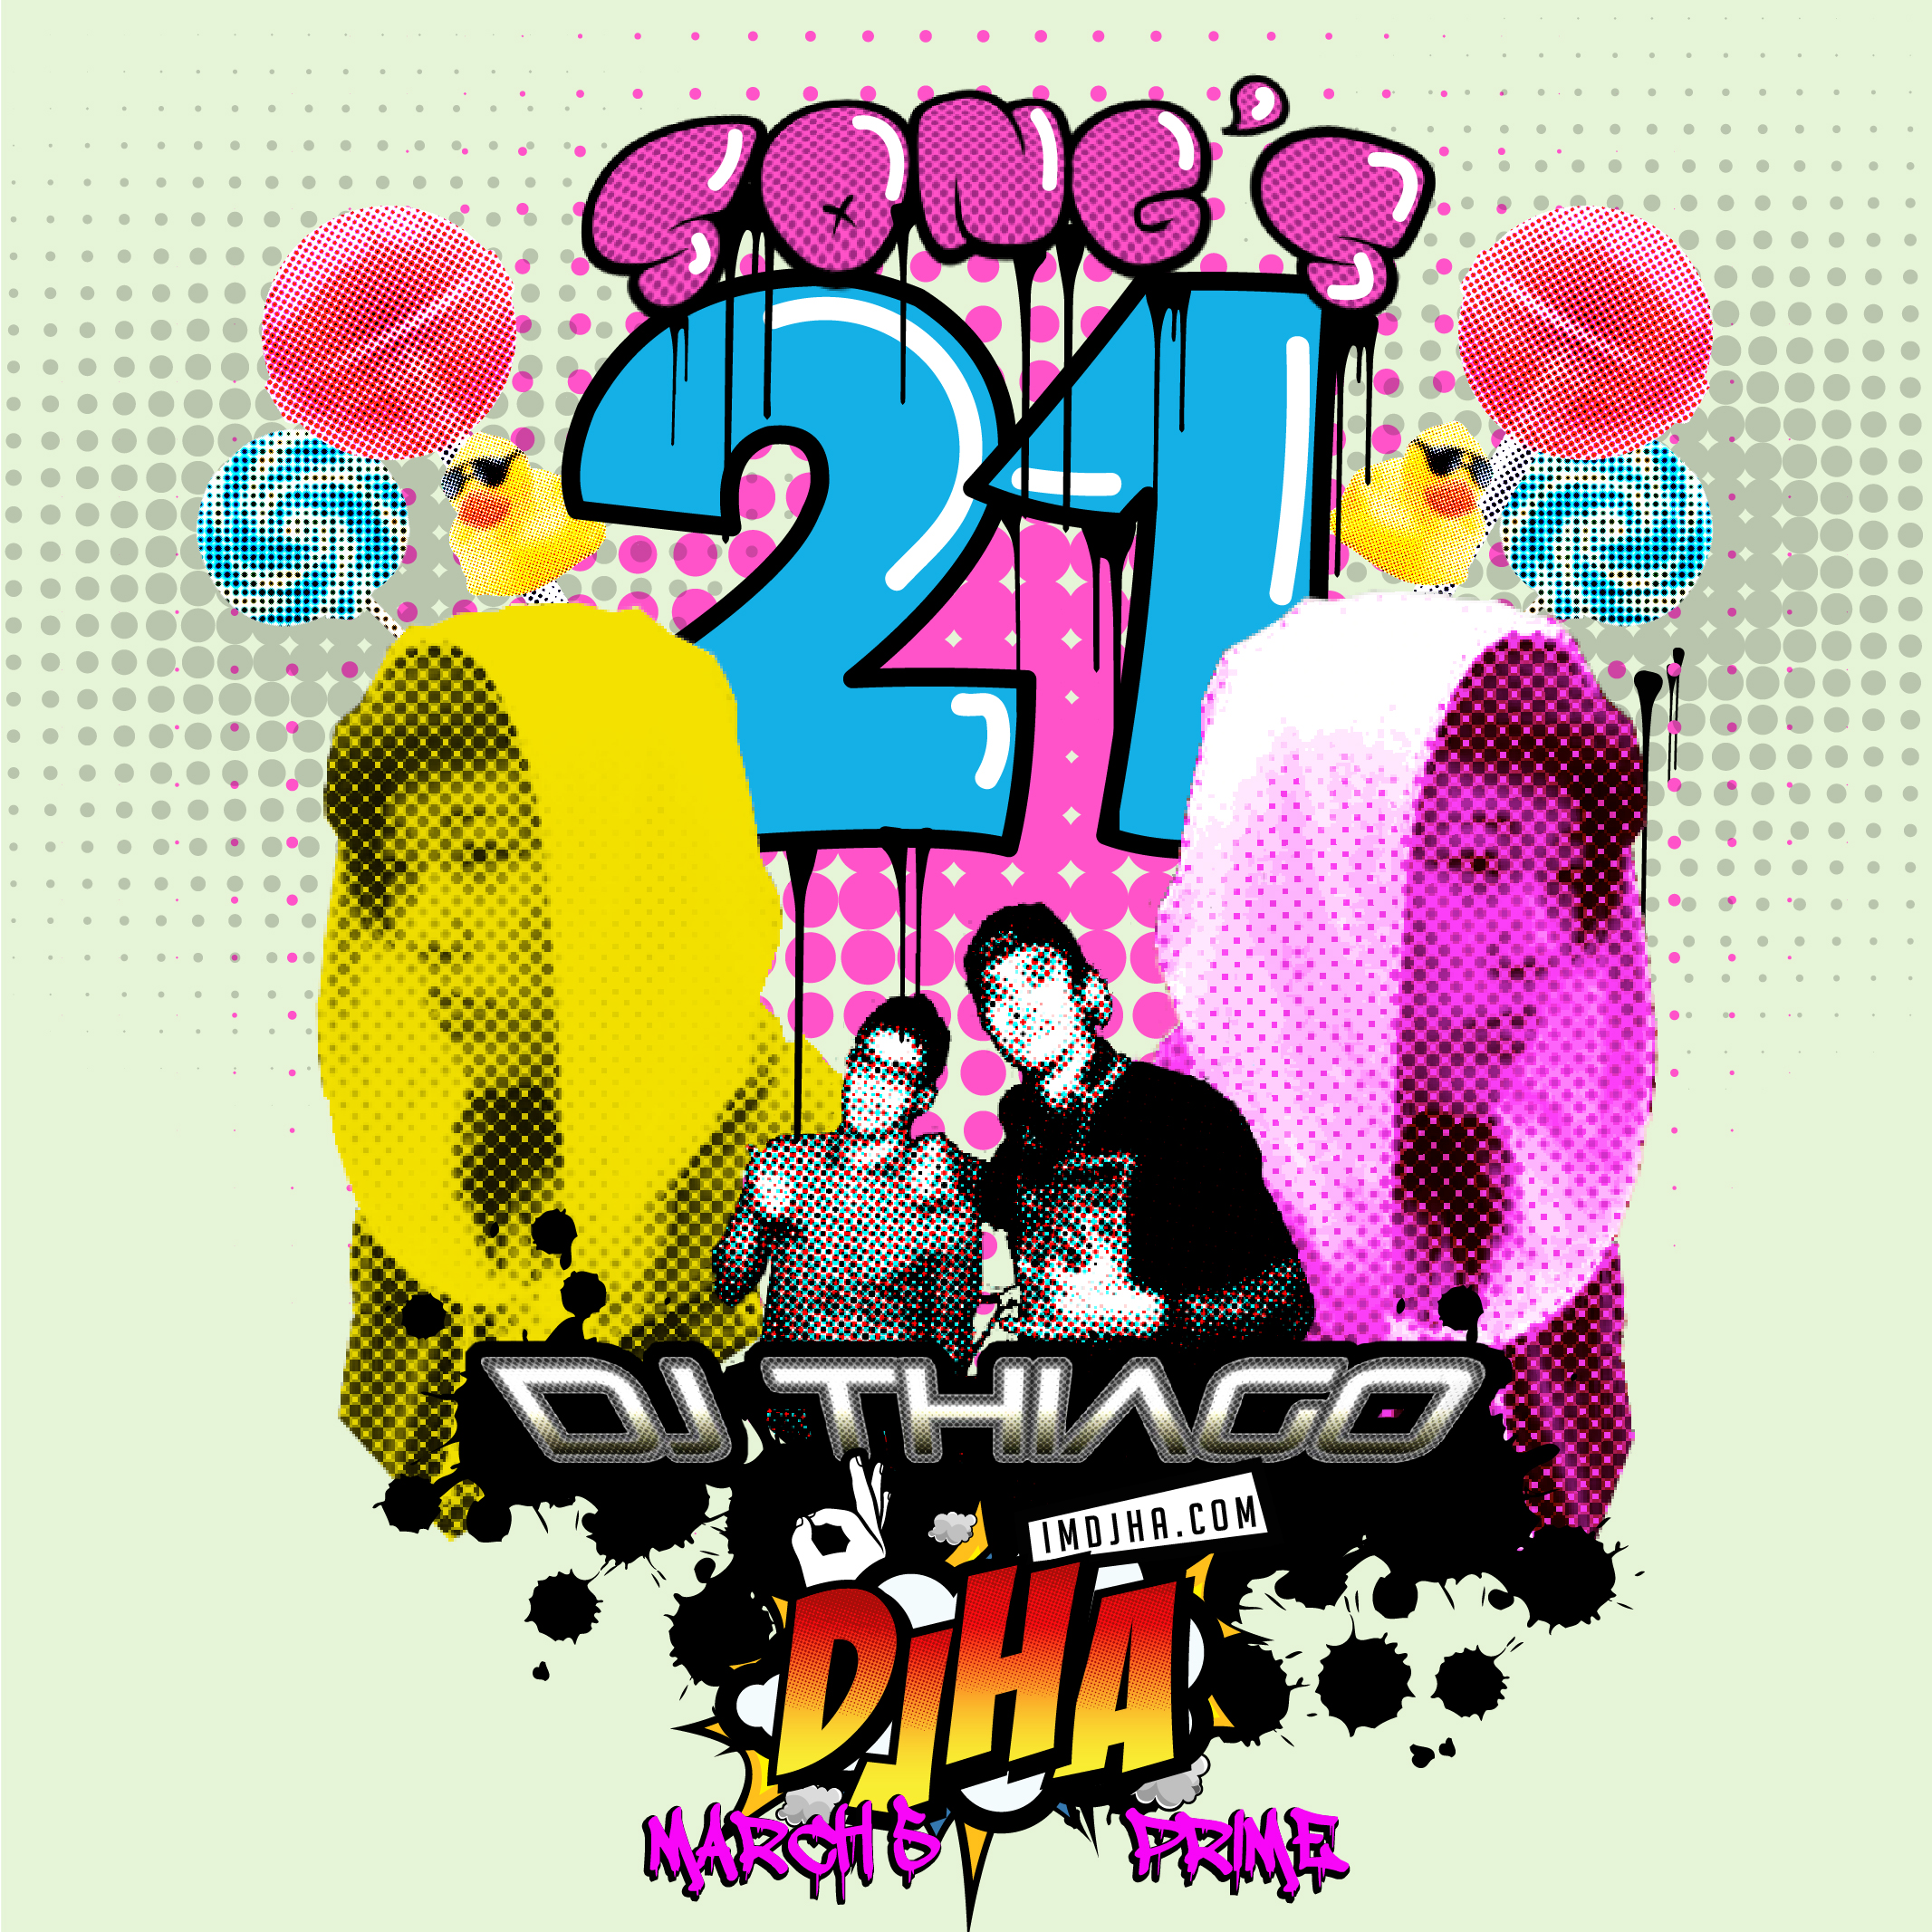 Song's 21st-01-01